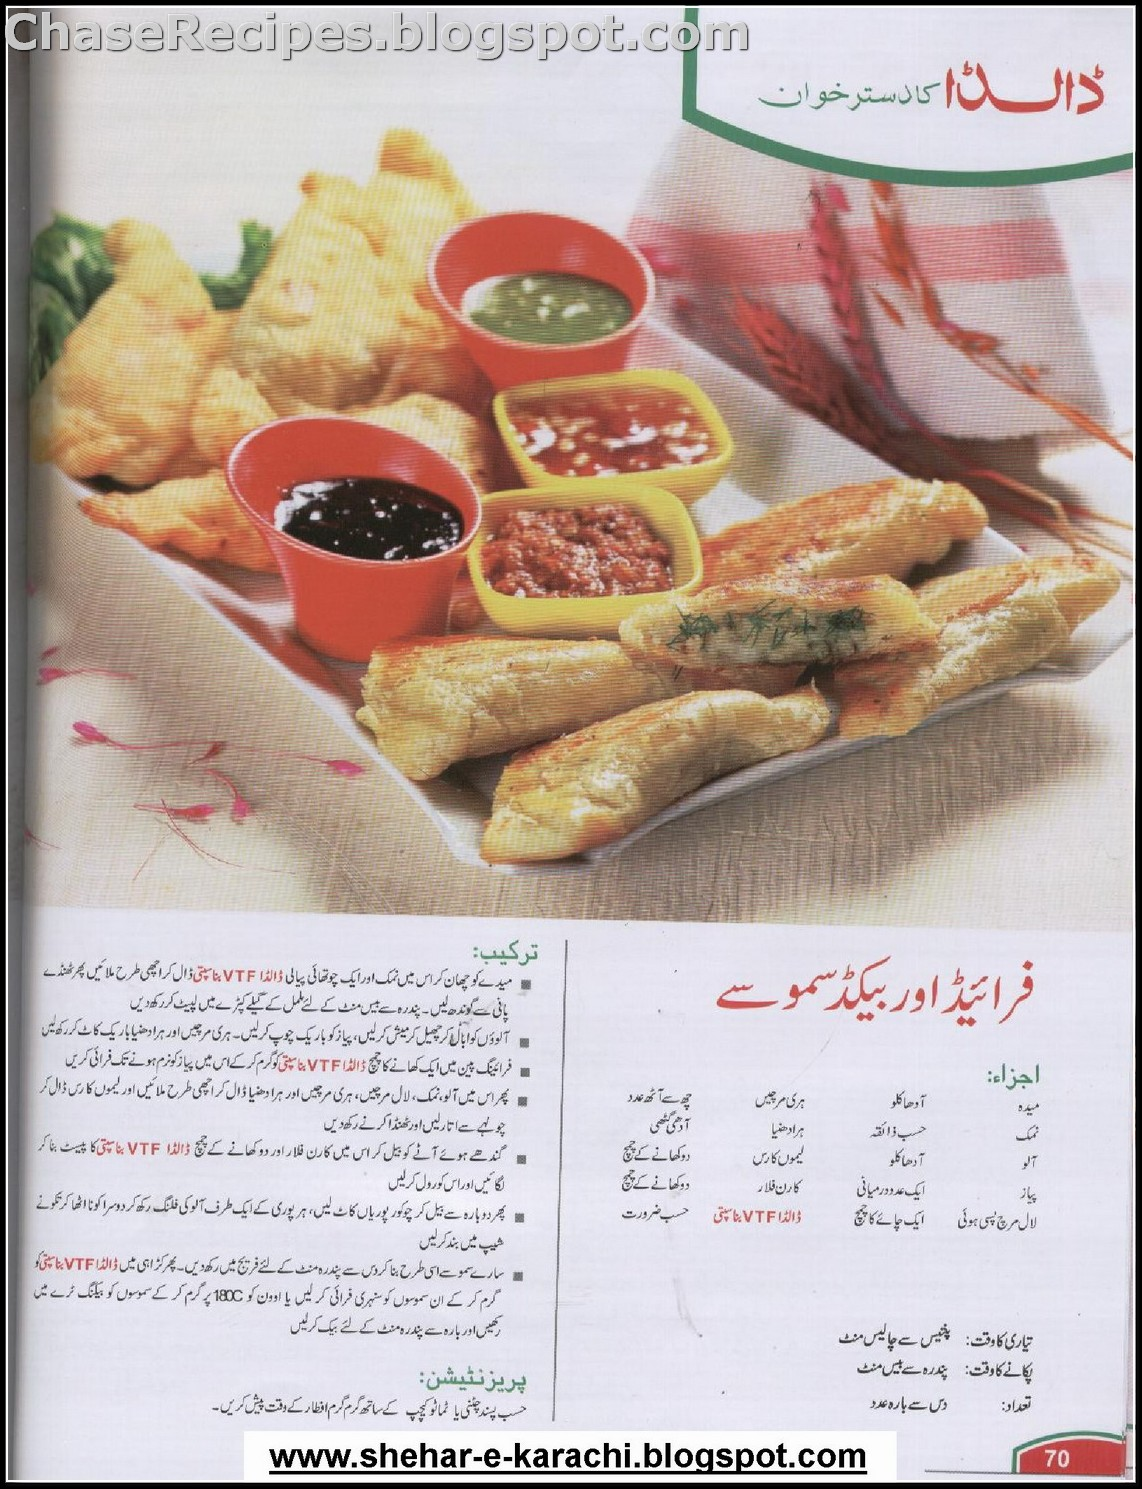 Fried and baked samosa recipe by dalda in urduhindi chase recipes fried and baked samosa recipe by dalda in urduhindi forumfinder Choice Image